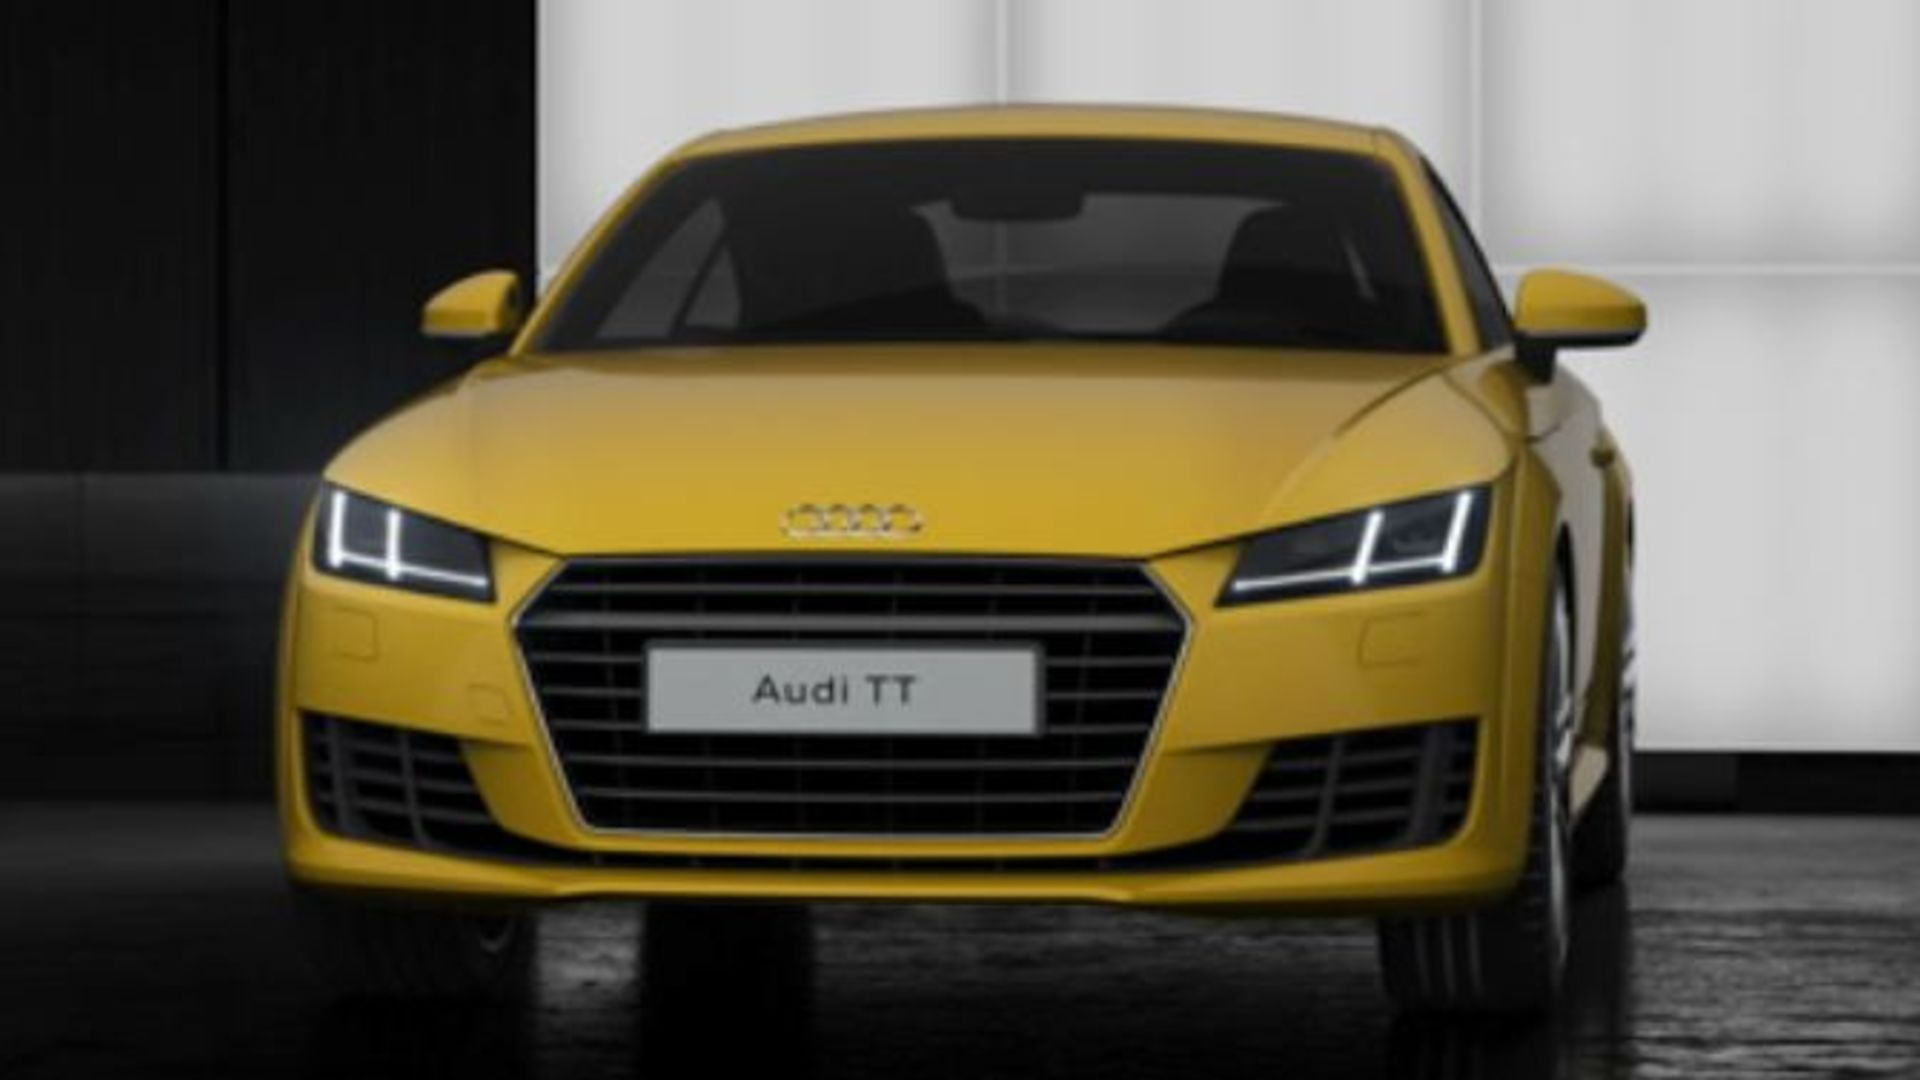 Signature Audi daytime running lights - Animation